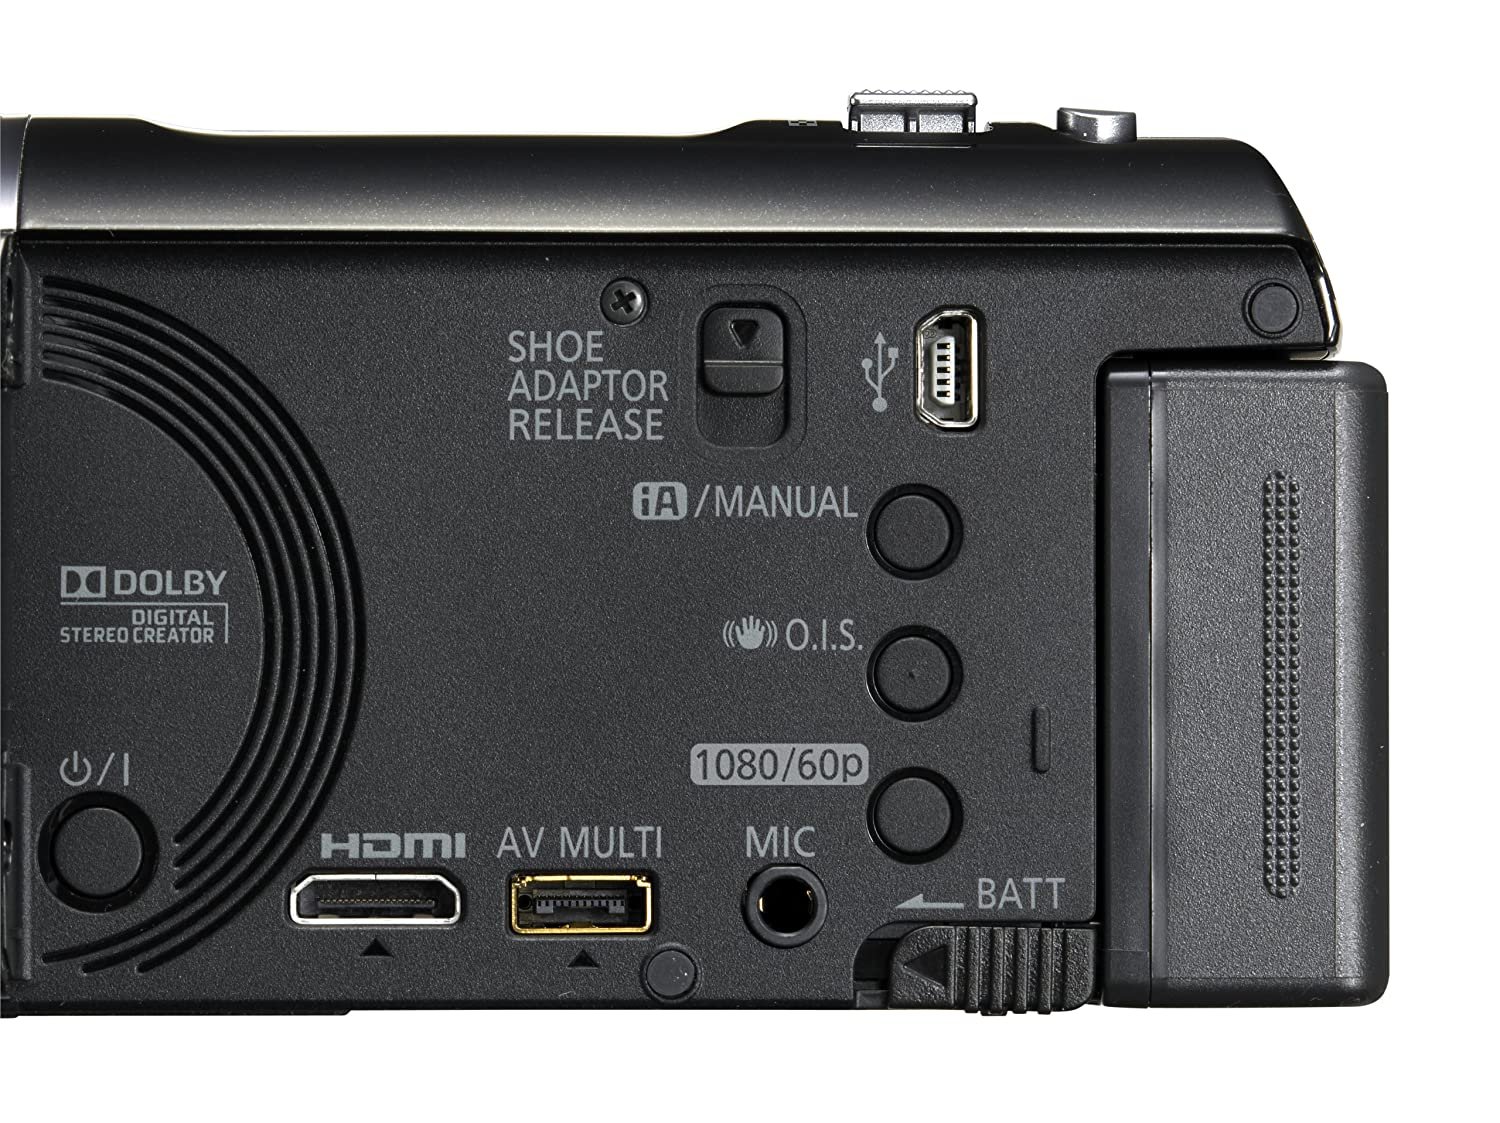 Amazon.com : Panasonic HDC-SD90K 3D Compatible SD Memory Camcorder (Black)  (Discontinued by Manufacturer) : Flash Memory Camcorders : Camera & Photo